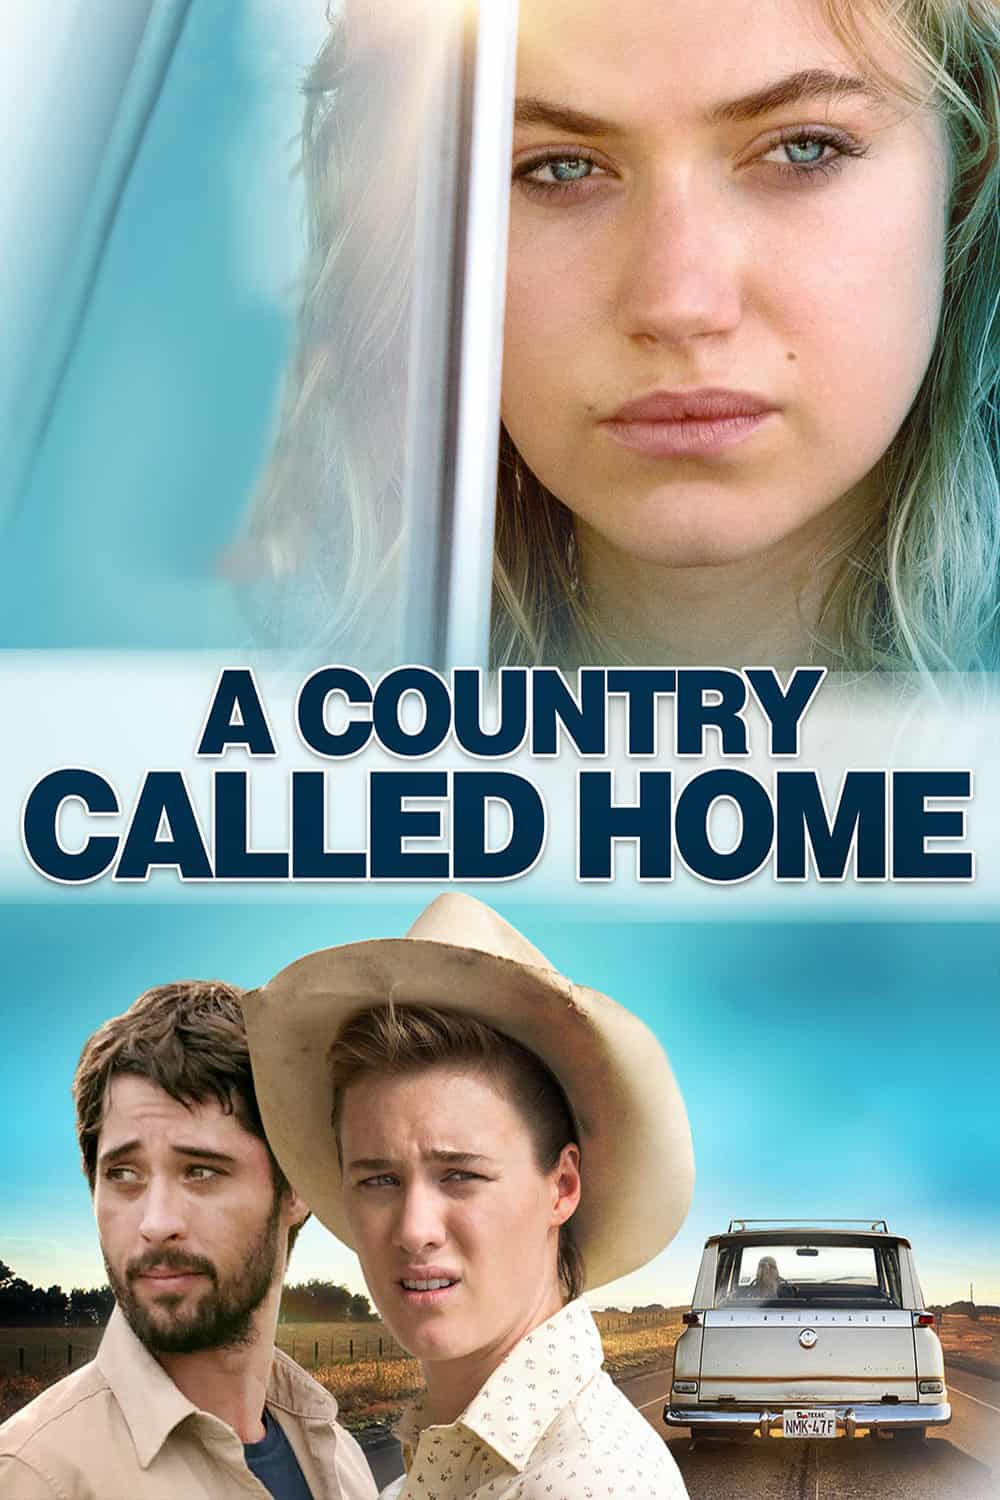 A Country Called Home, 2015